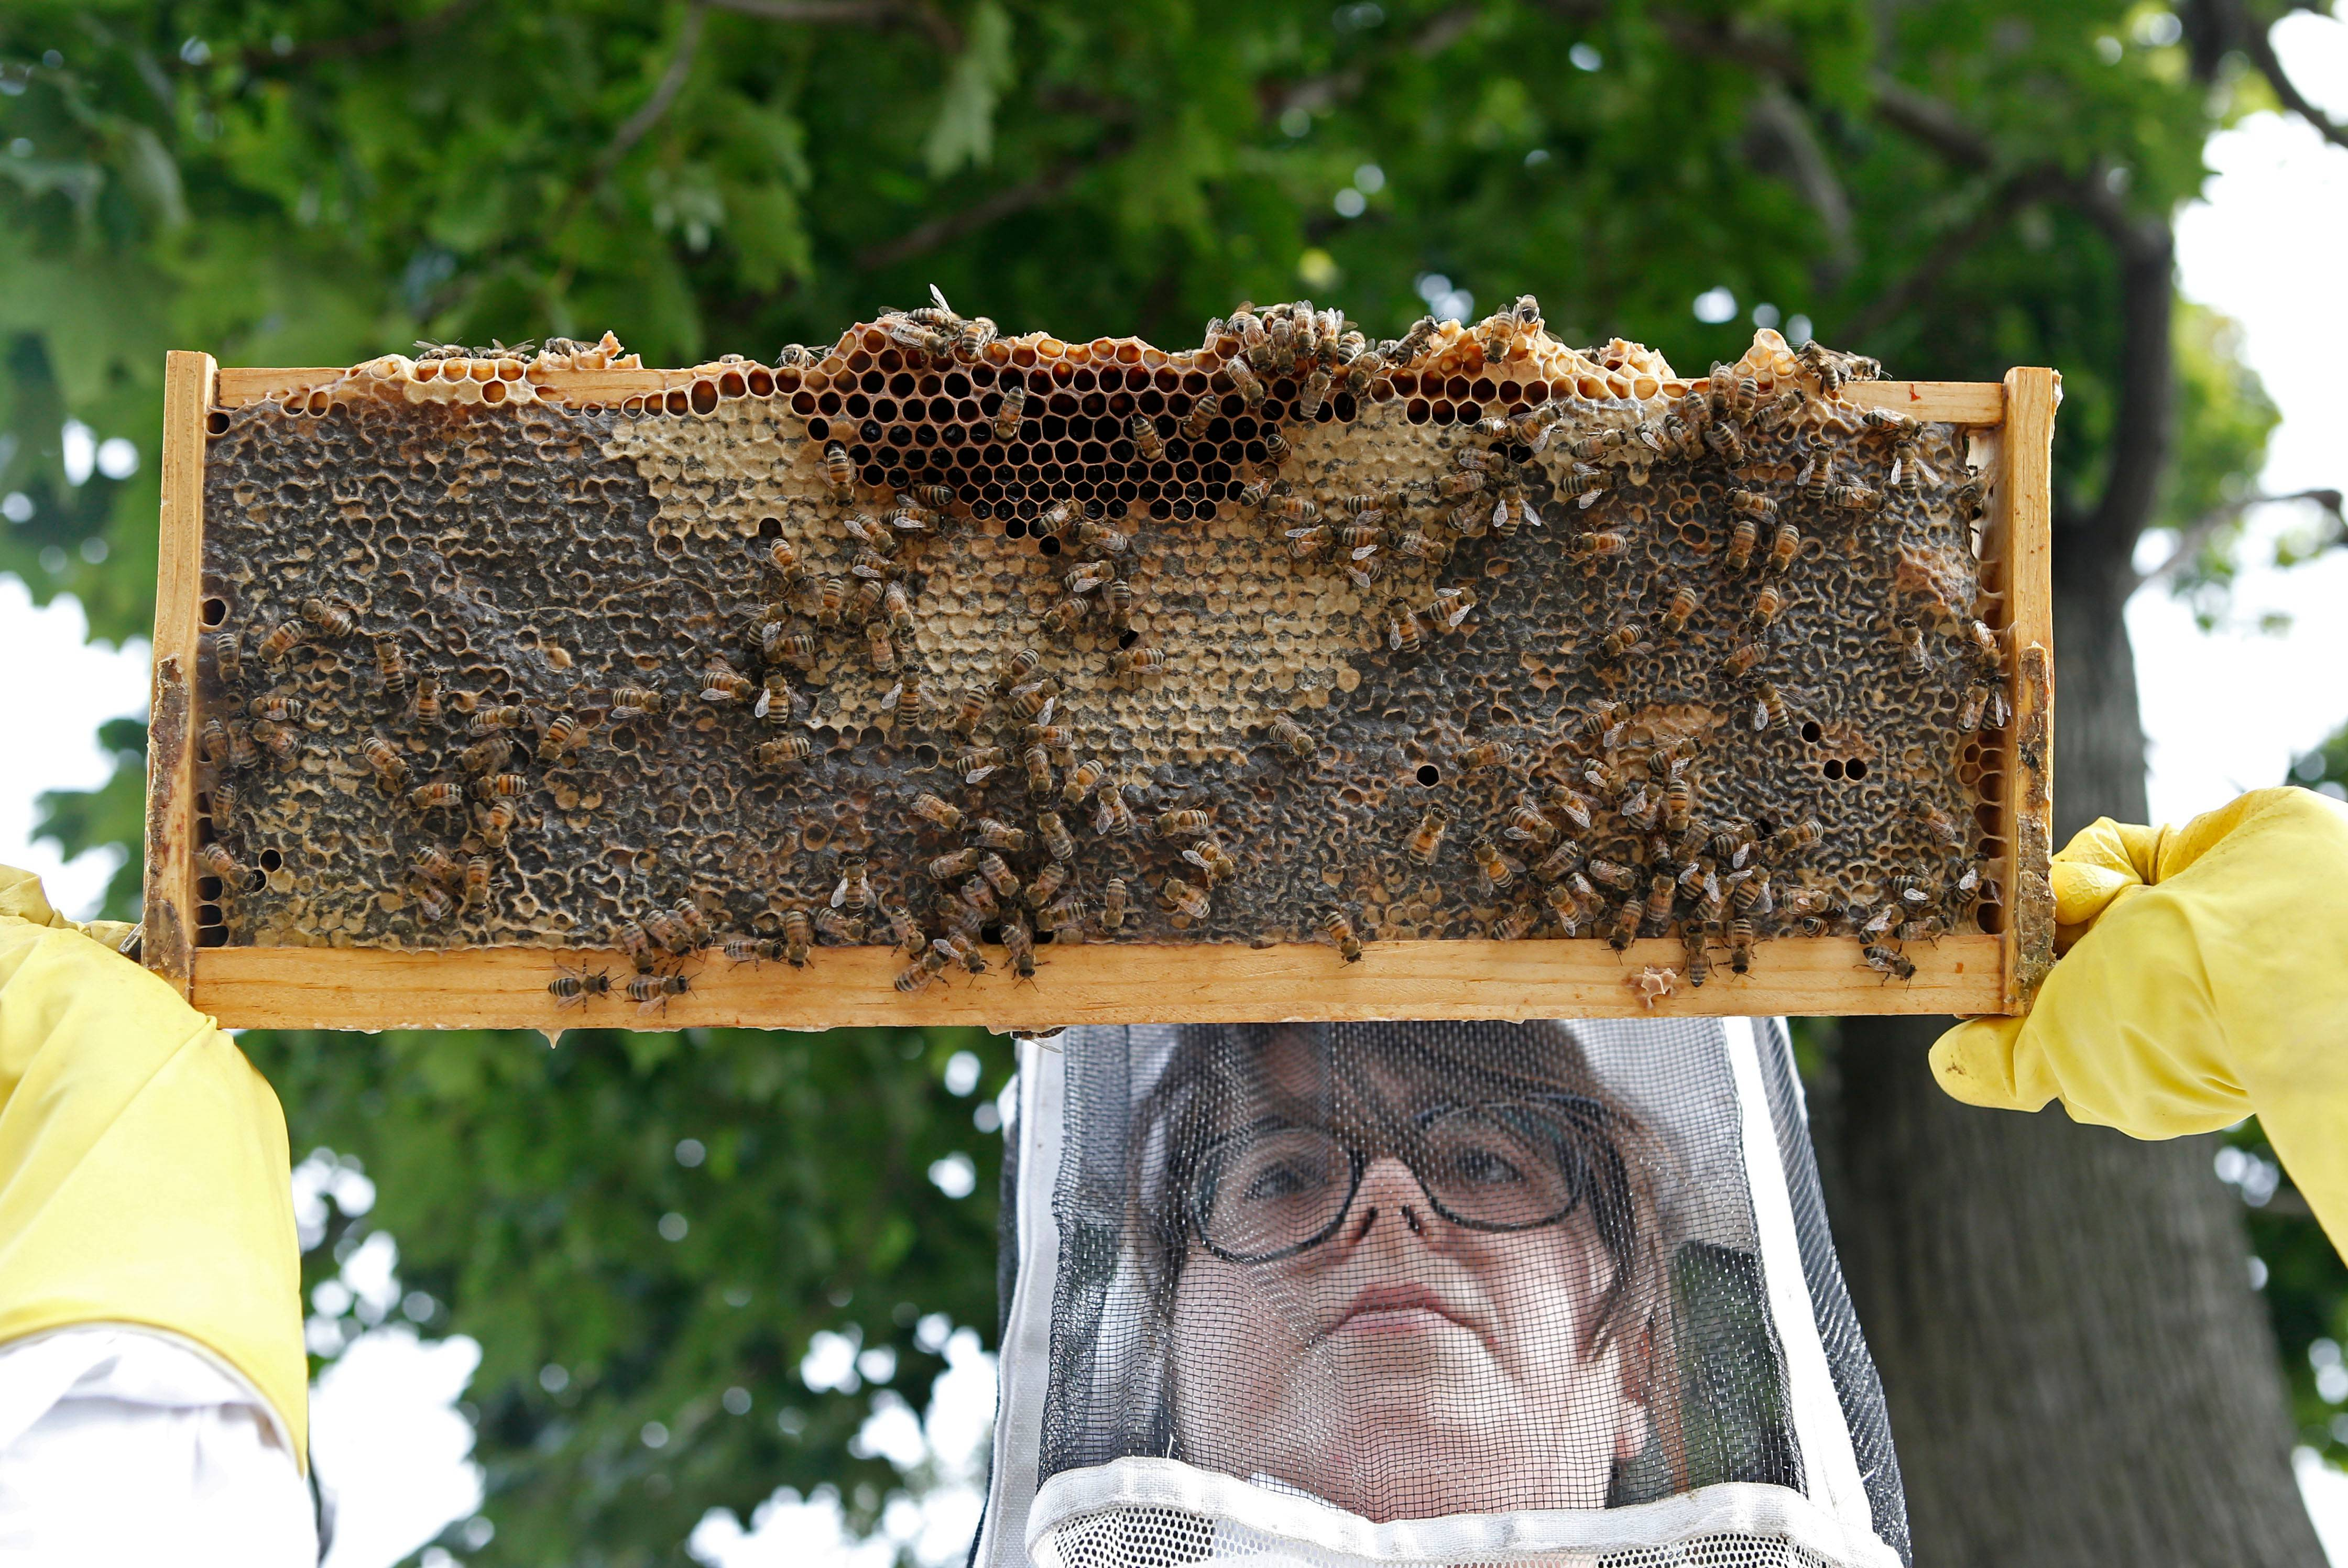 Honeybees to be OK'd with permit in Elgin starting Jan. 1